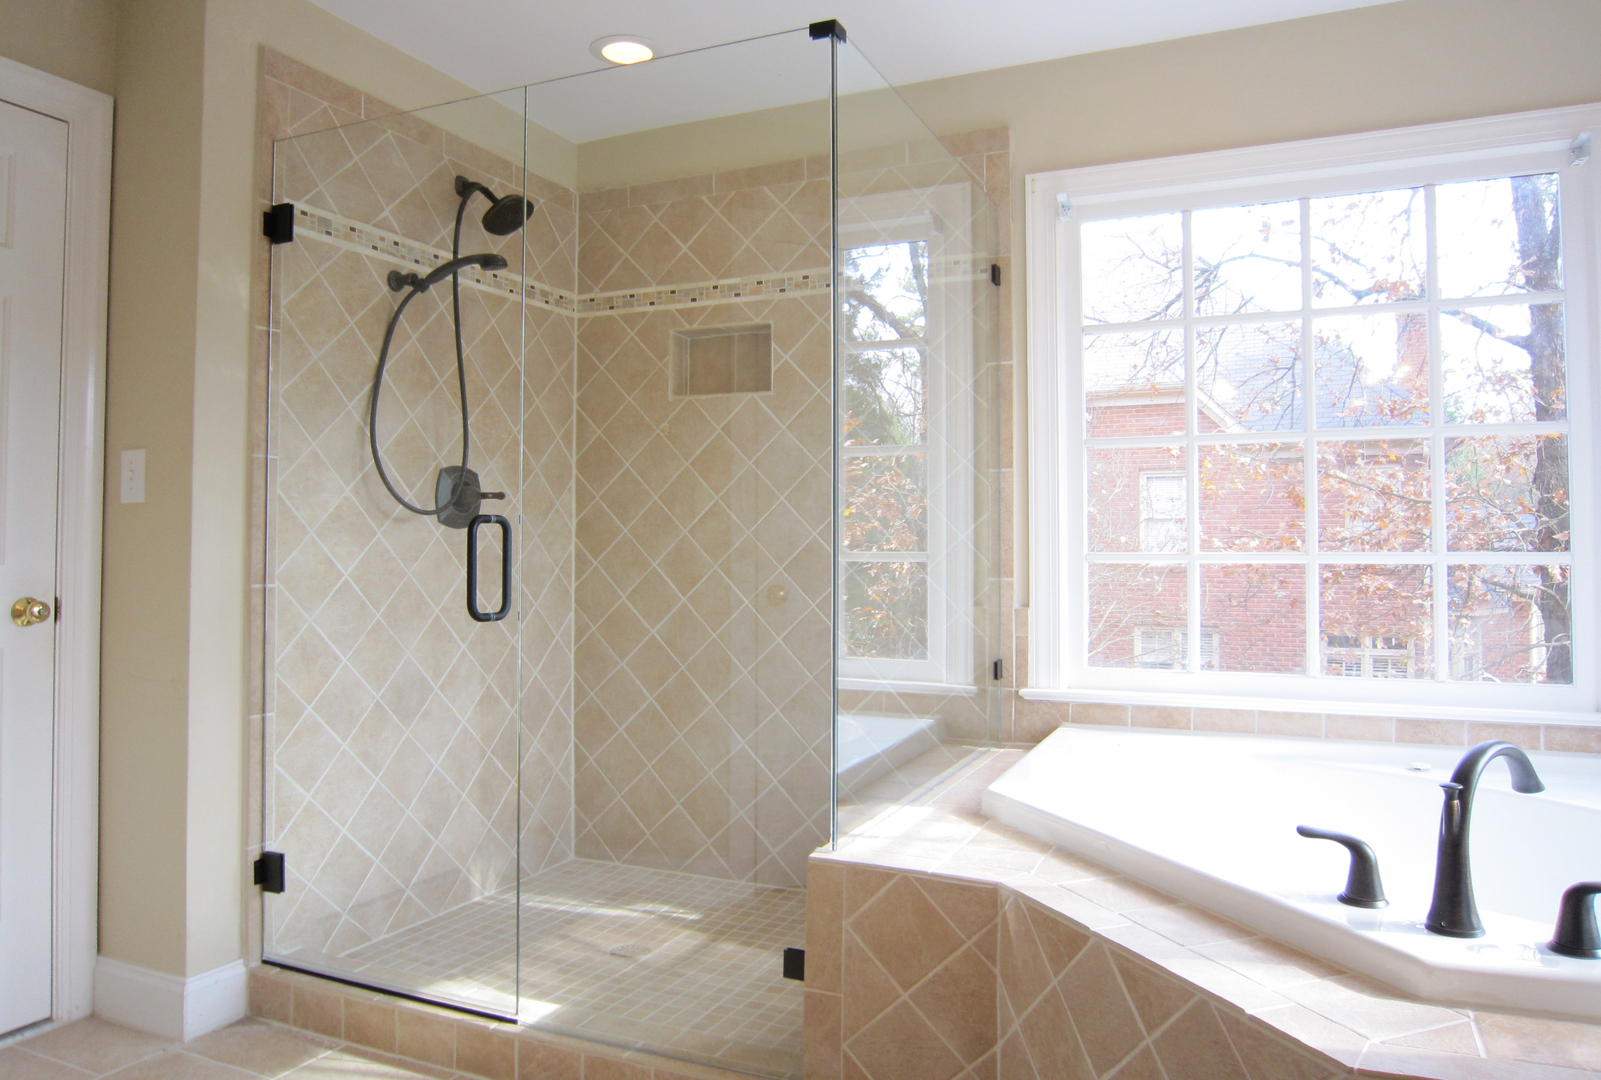 Carolina Sgo Frameless Glass Shower Doors Frameless Shower Door